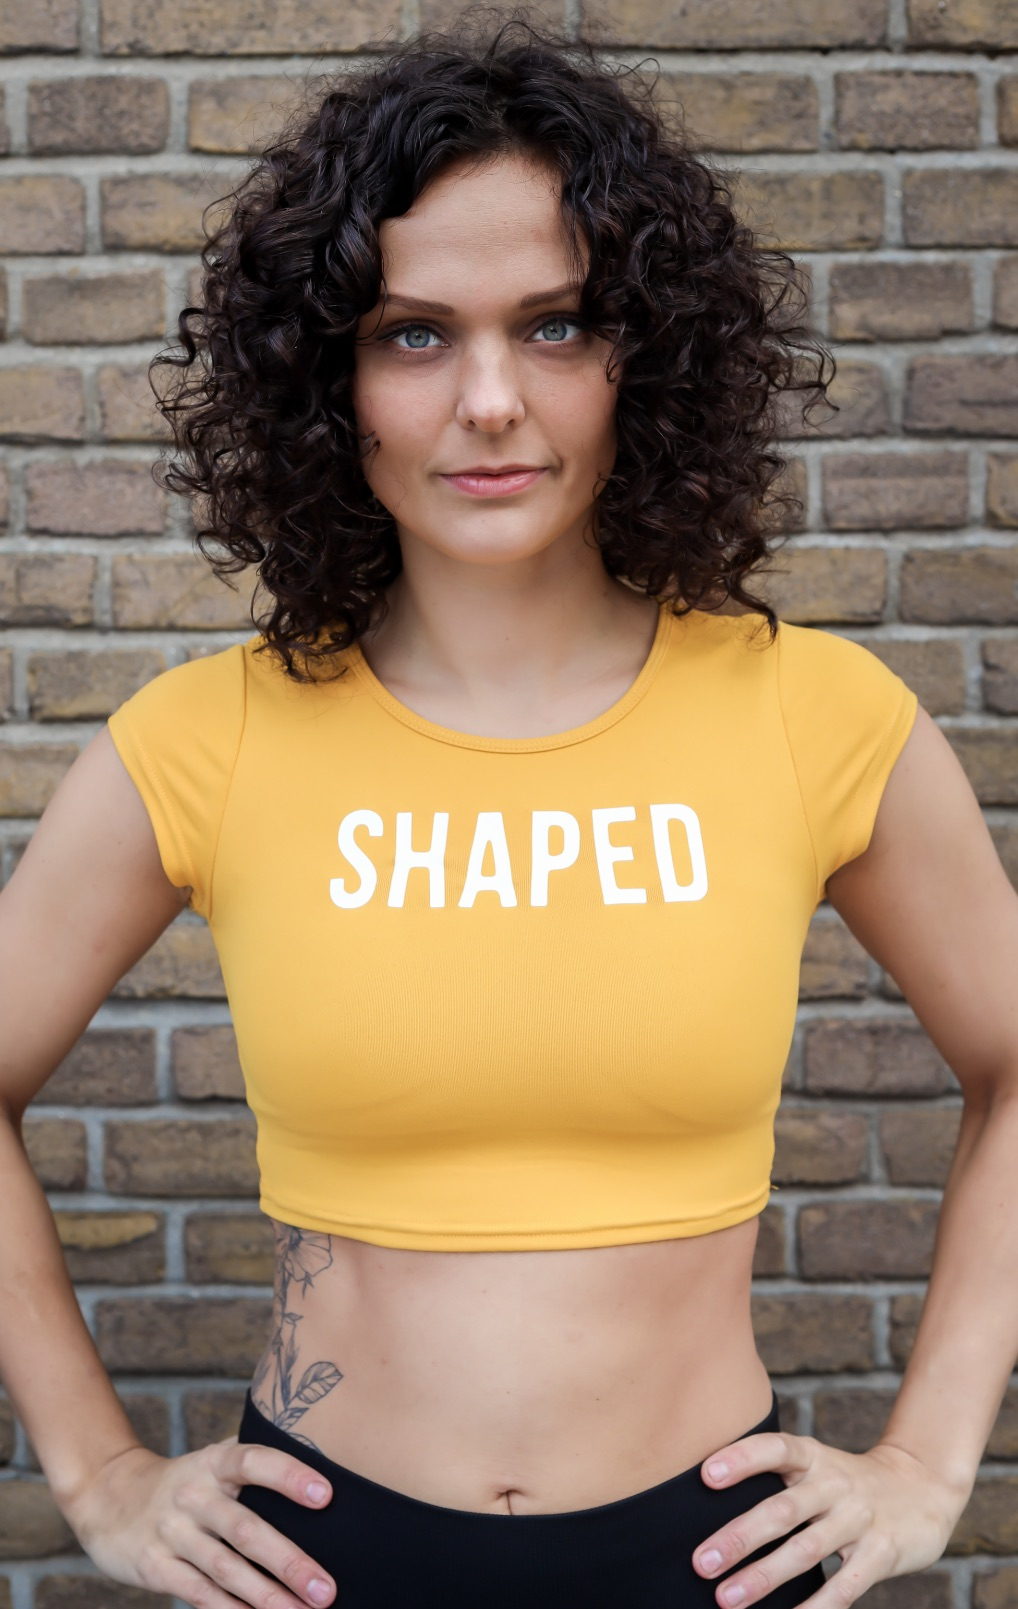 Dames cropped shirt in zwart en geel van Shaped